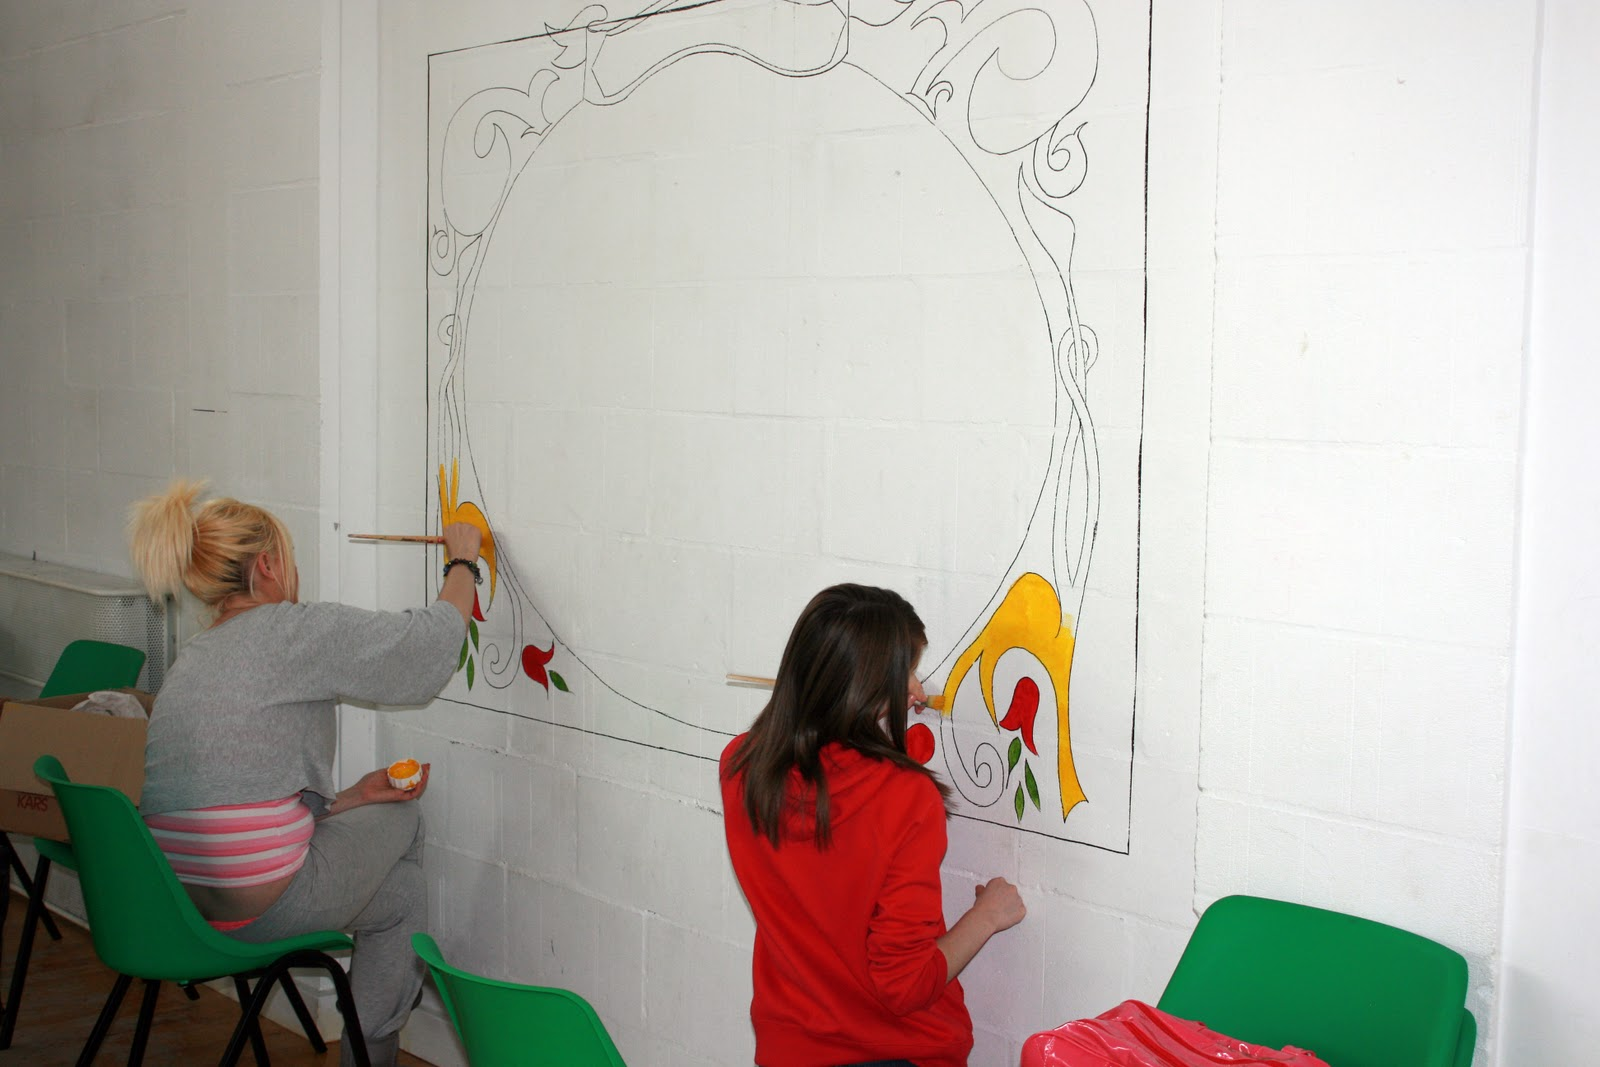 Croy Historical Society - Mural Painting In Progress